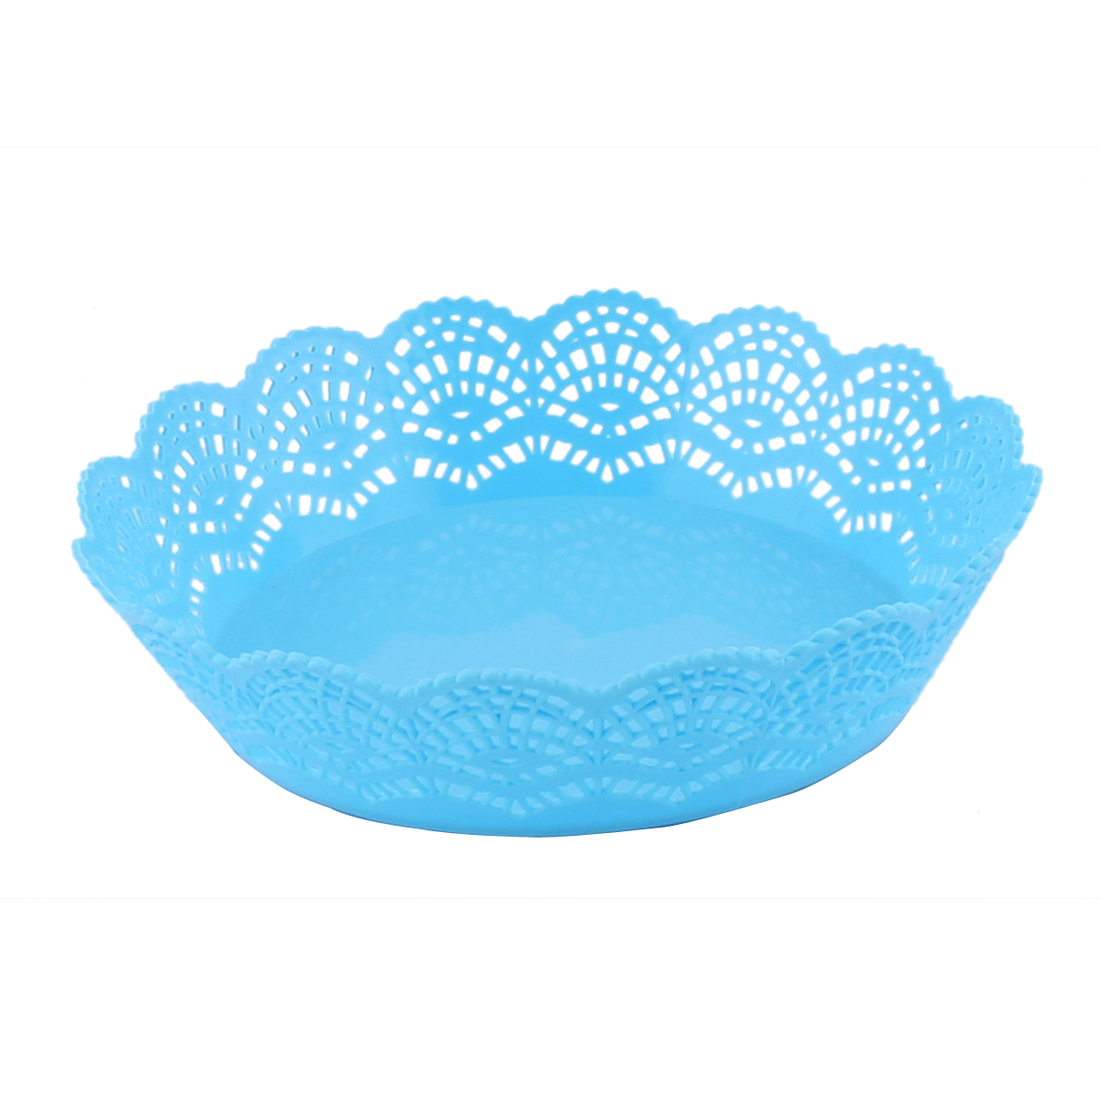 Home Living Room Kitchenware Plastic Hollow Out Wave Edge Fruit Plate Basket Blue